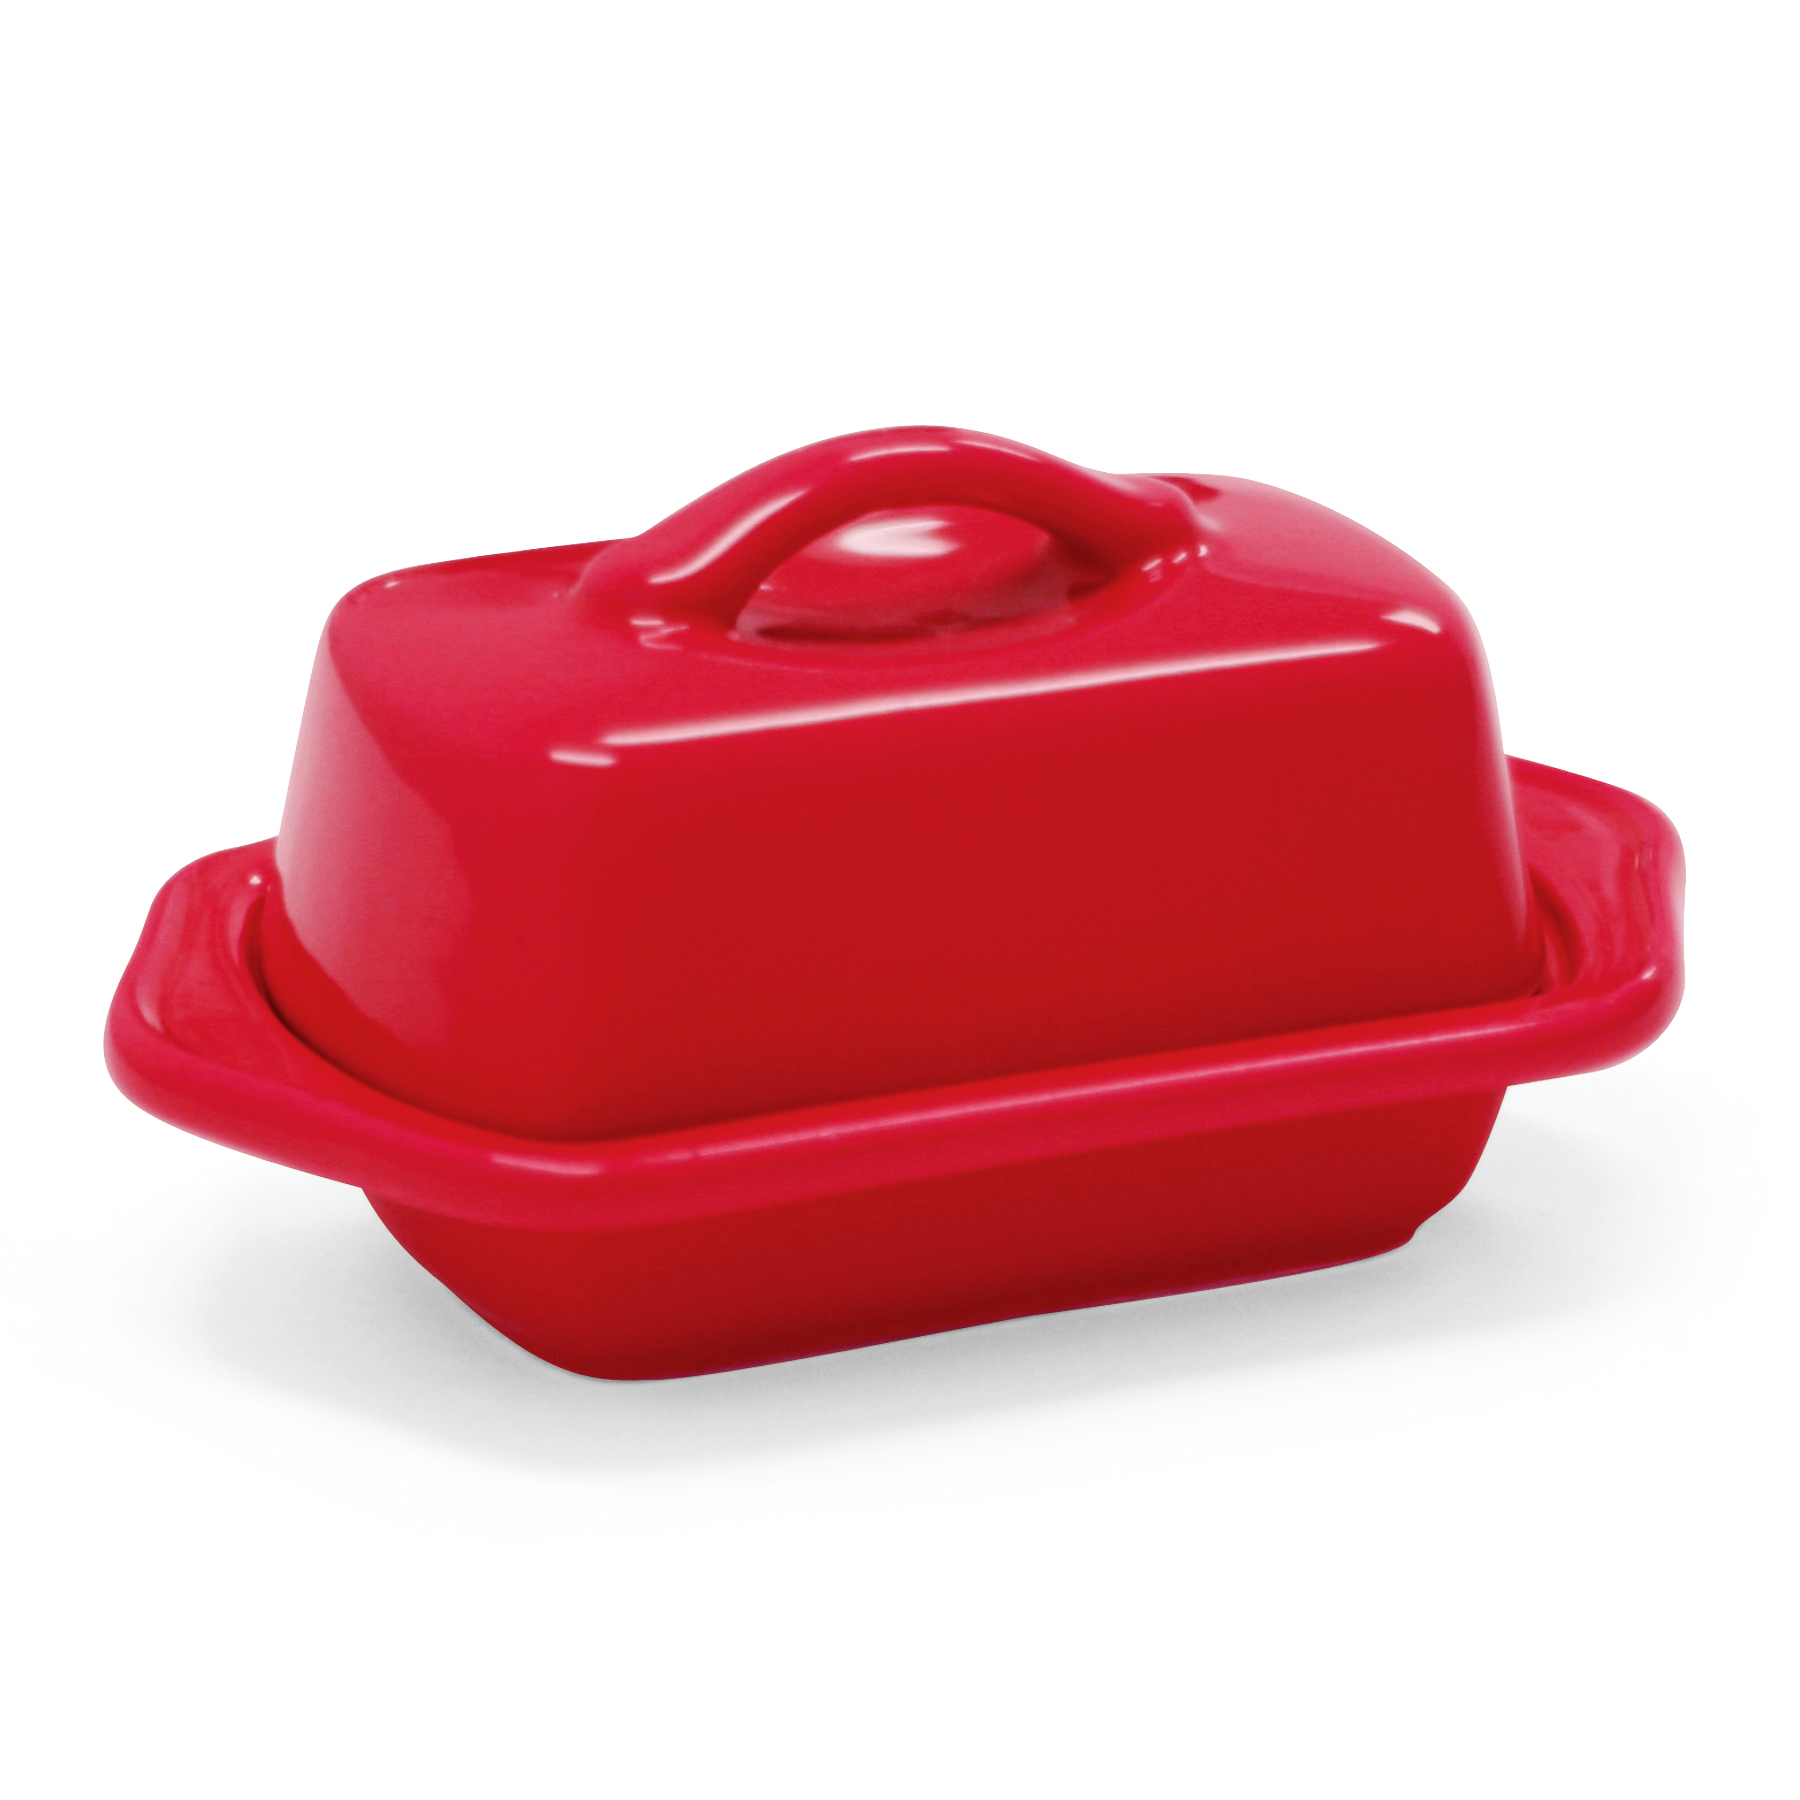 Chantal True Red Stoneware Mini 5 Inch Butter Dish